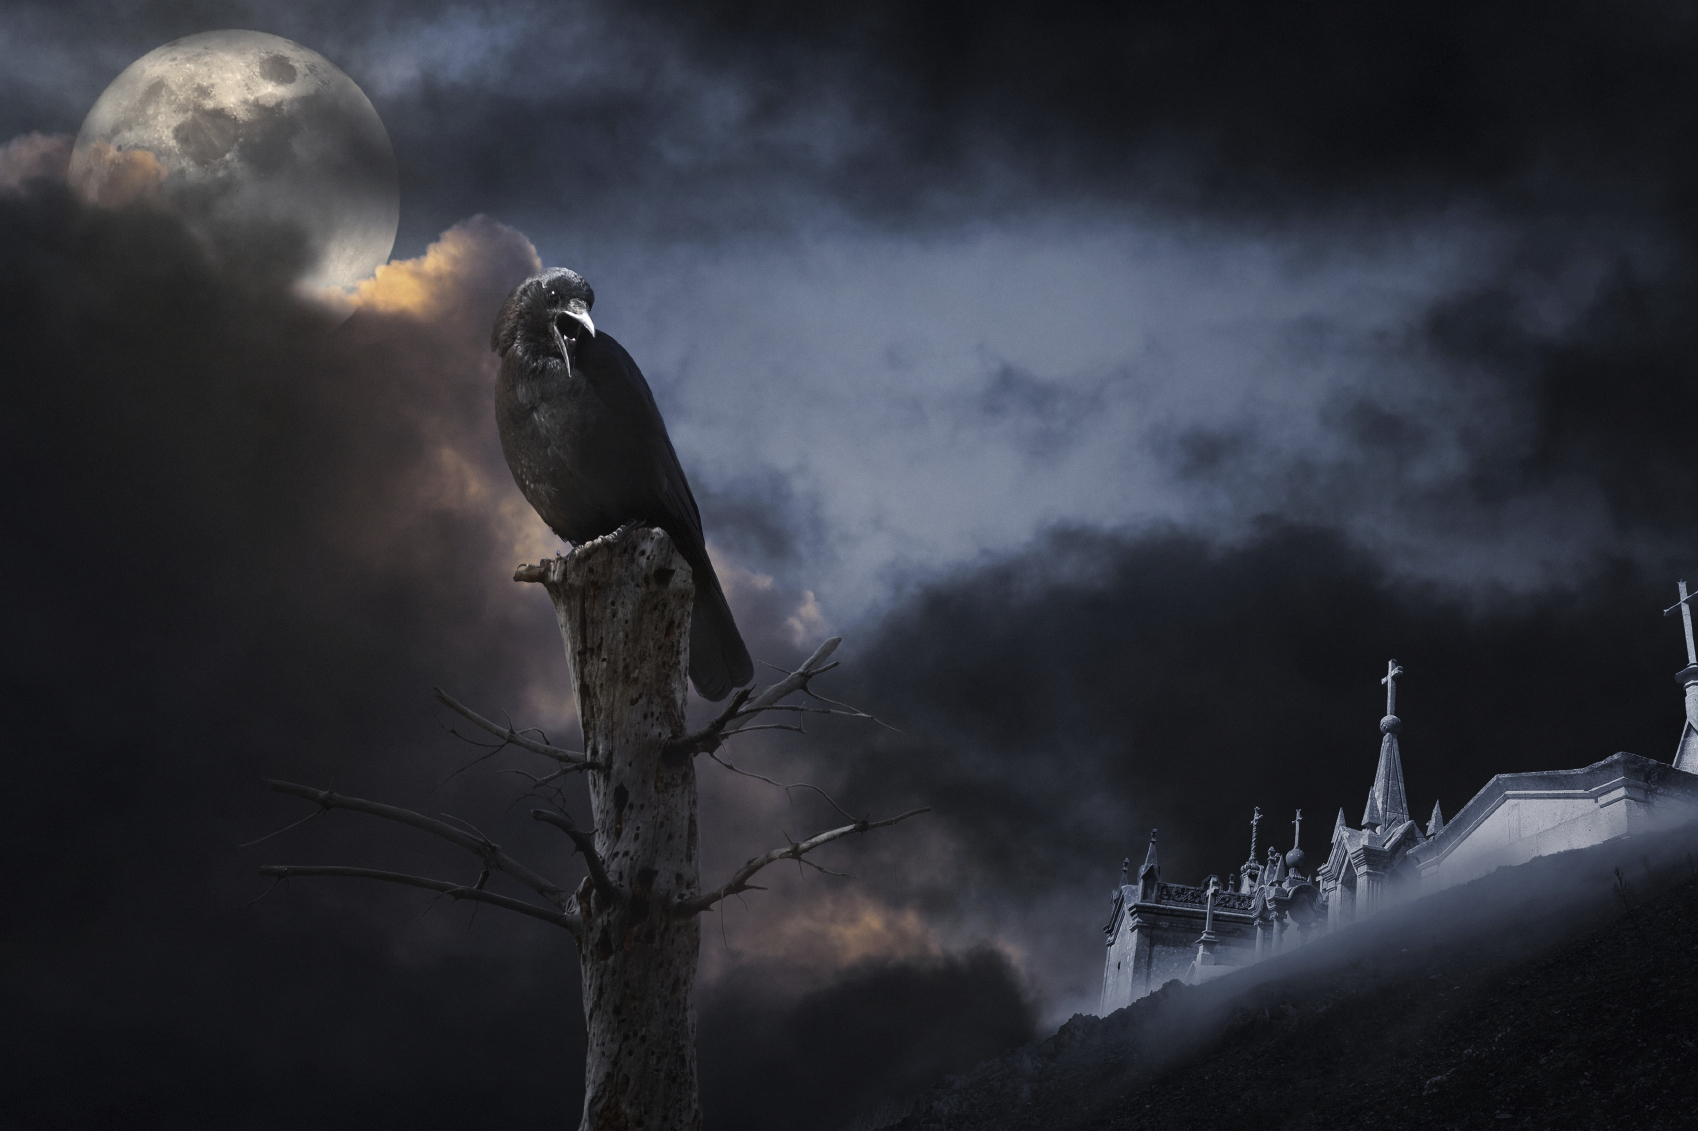 Ravens populate the mythology of many cultures throughout the northern ...